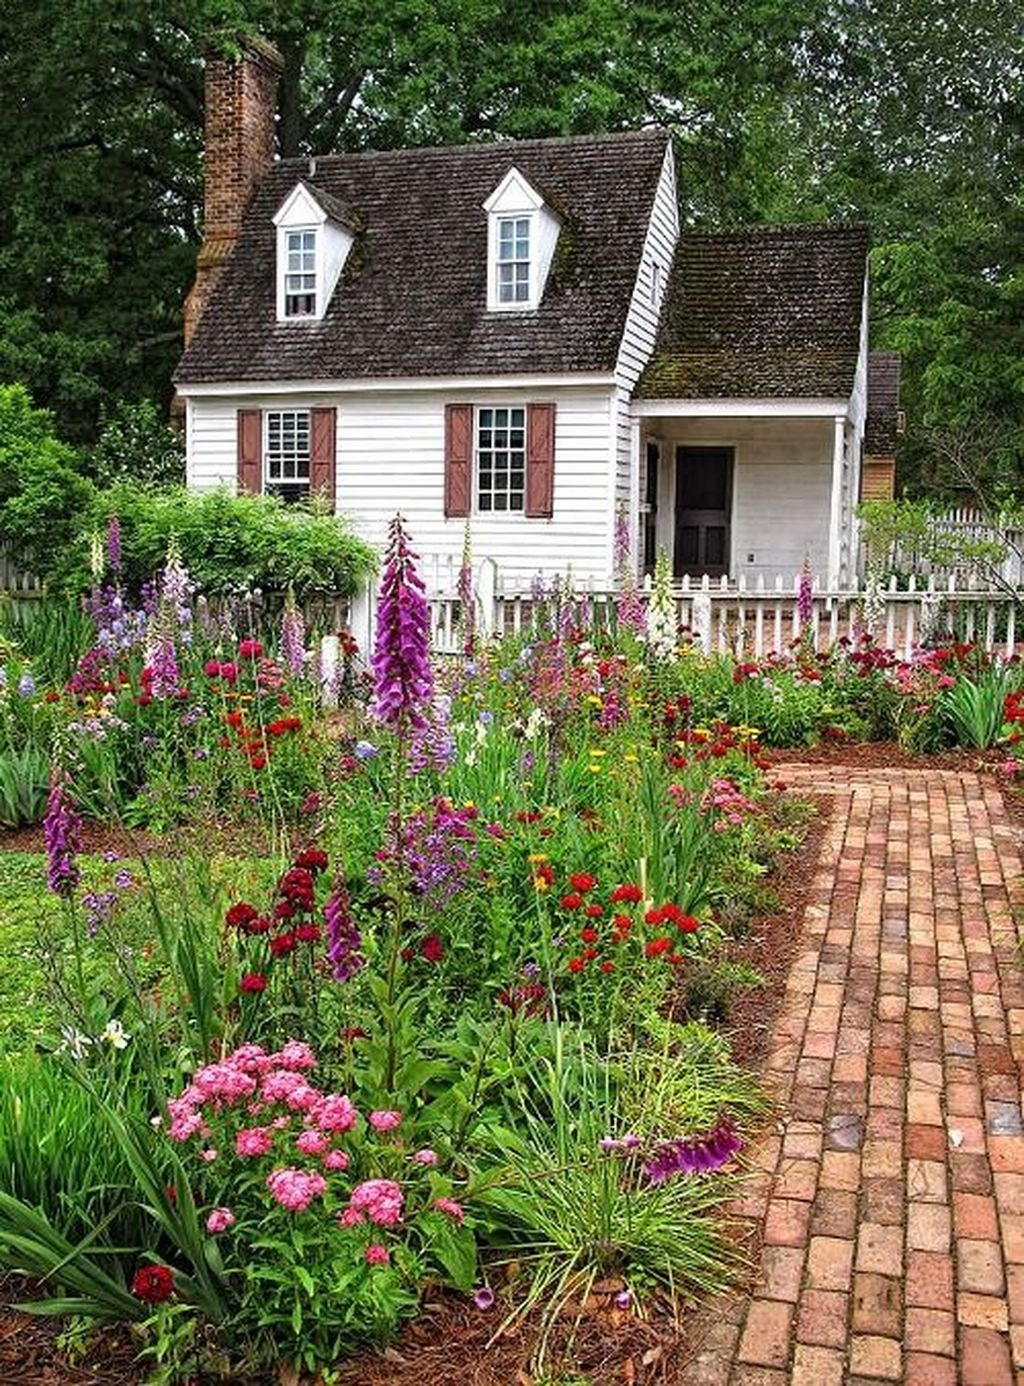 Awesome Cottage Garden Design Ideas For Your Dream House15